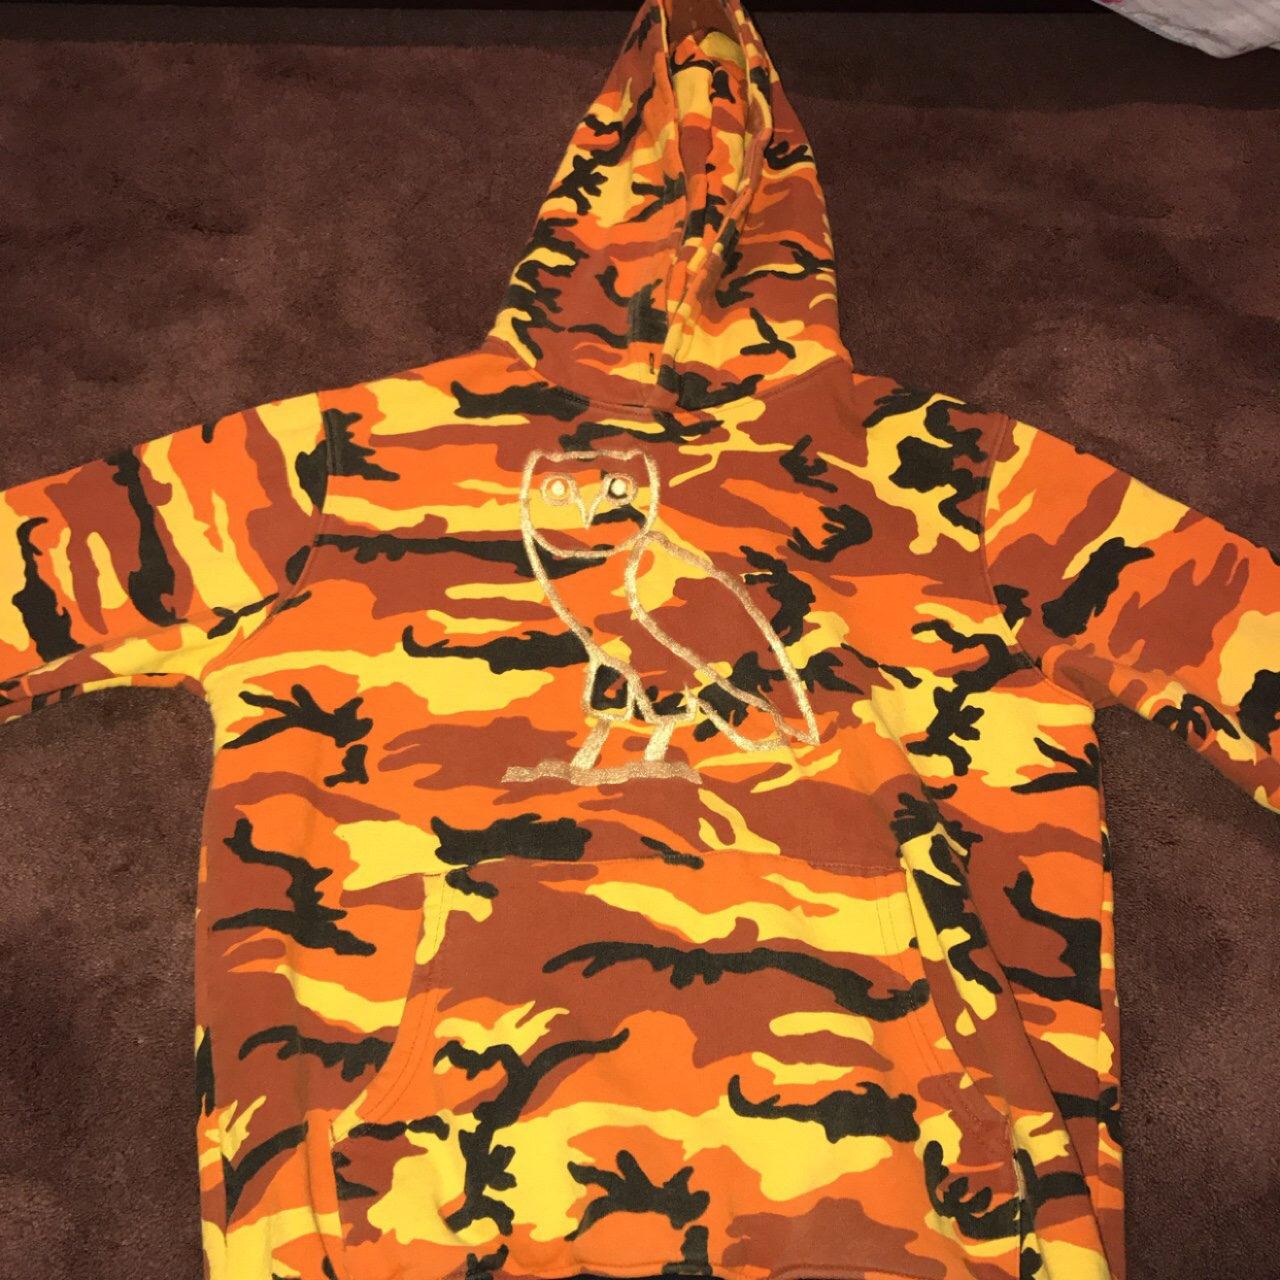 bfb1f1393 Octobers Very Own OVO Camo Owl Hoodie (Rare) sold... - Depop